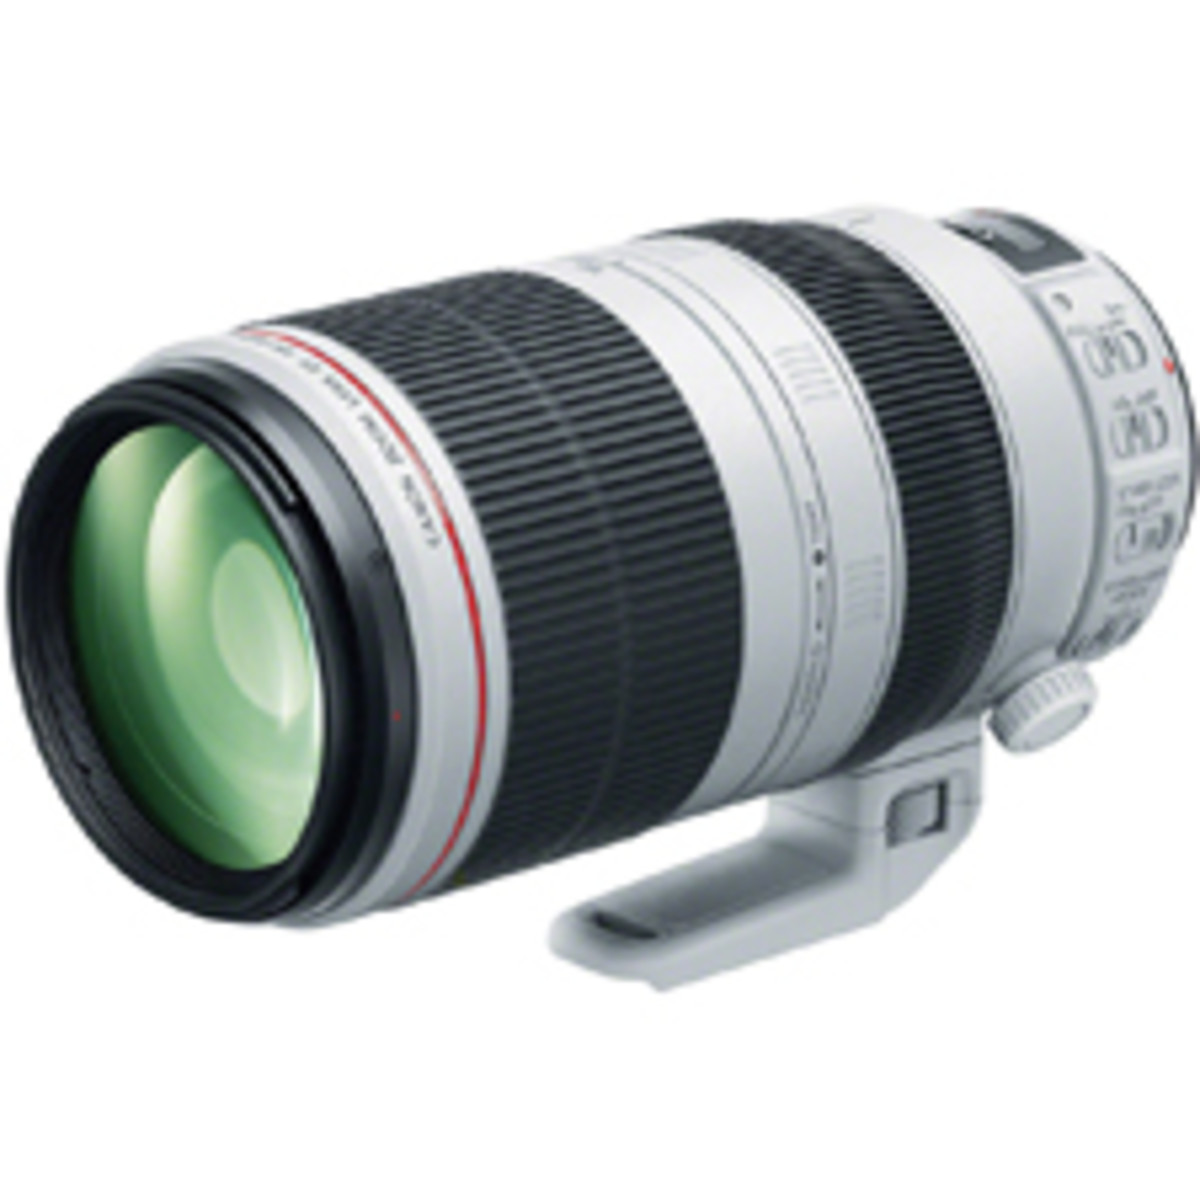 Canon 100 - 400L IS lens - The perfect lens for motor sports photography